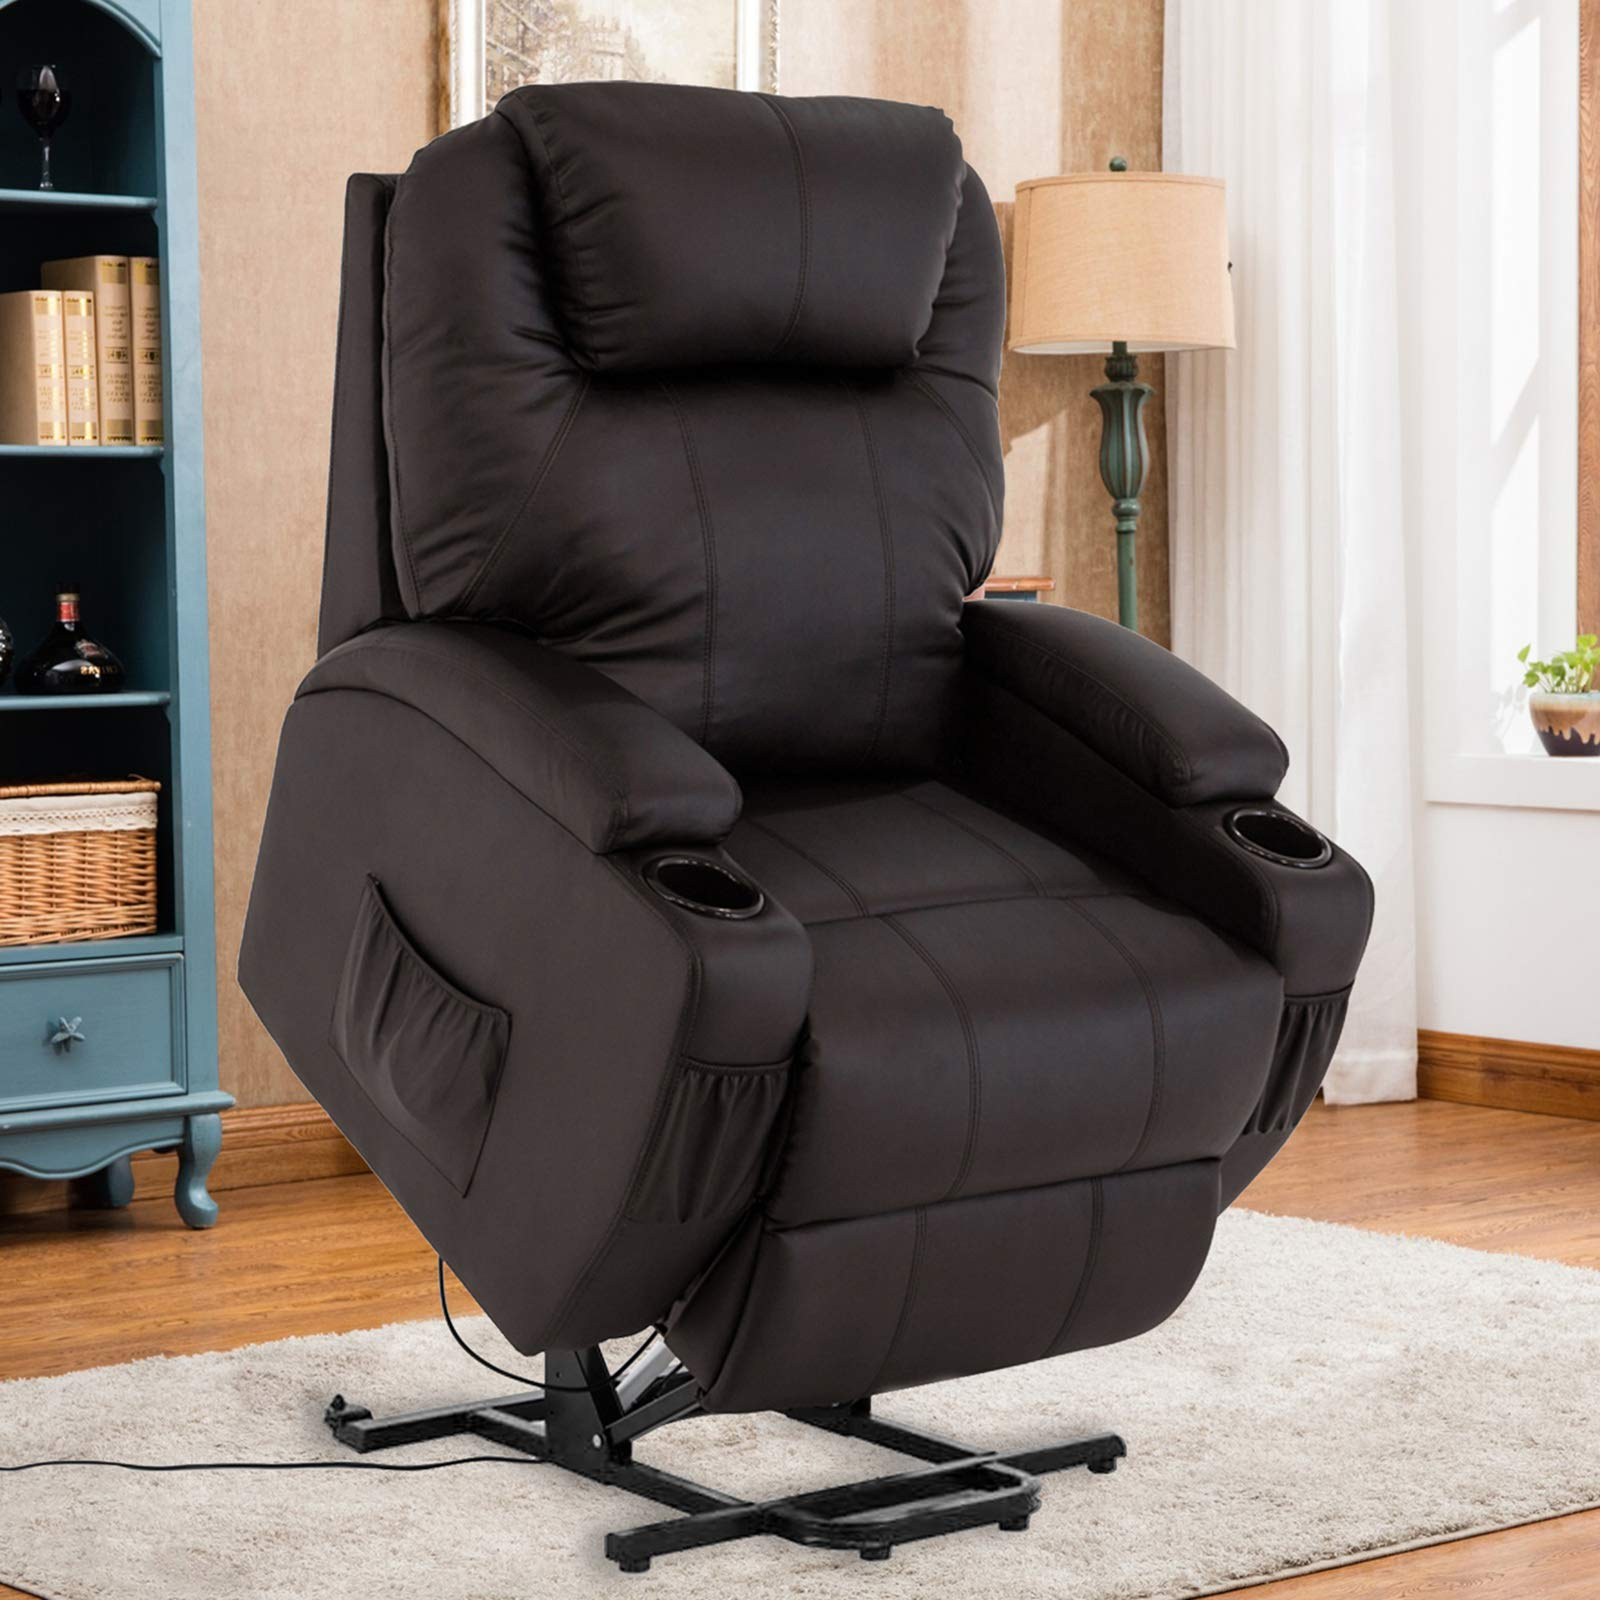 Mecor Lift Chair for Elderly Power Lift Recliner Chair Bonded Leather Electric Lifting Chair with Remote Control/Cup Holders/Reinforced Heavy Duty Reclining Mechanism for Living Room (Brown) by mecor